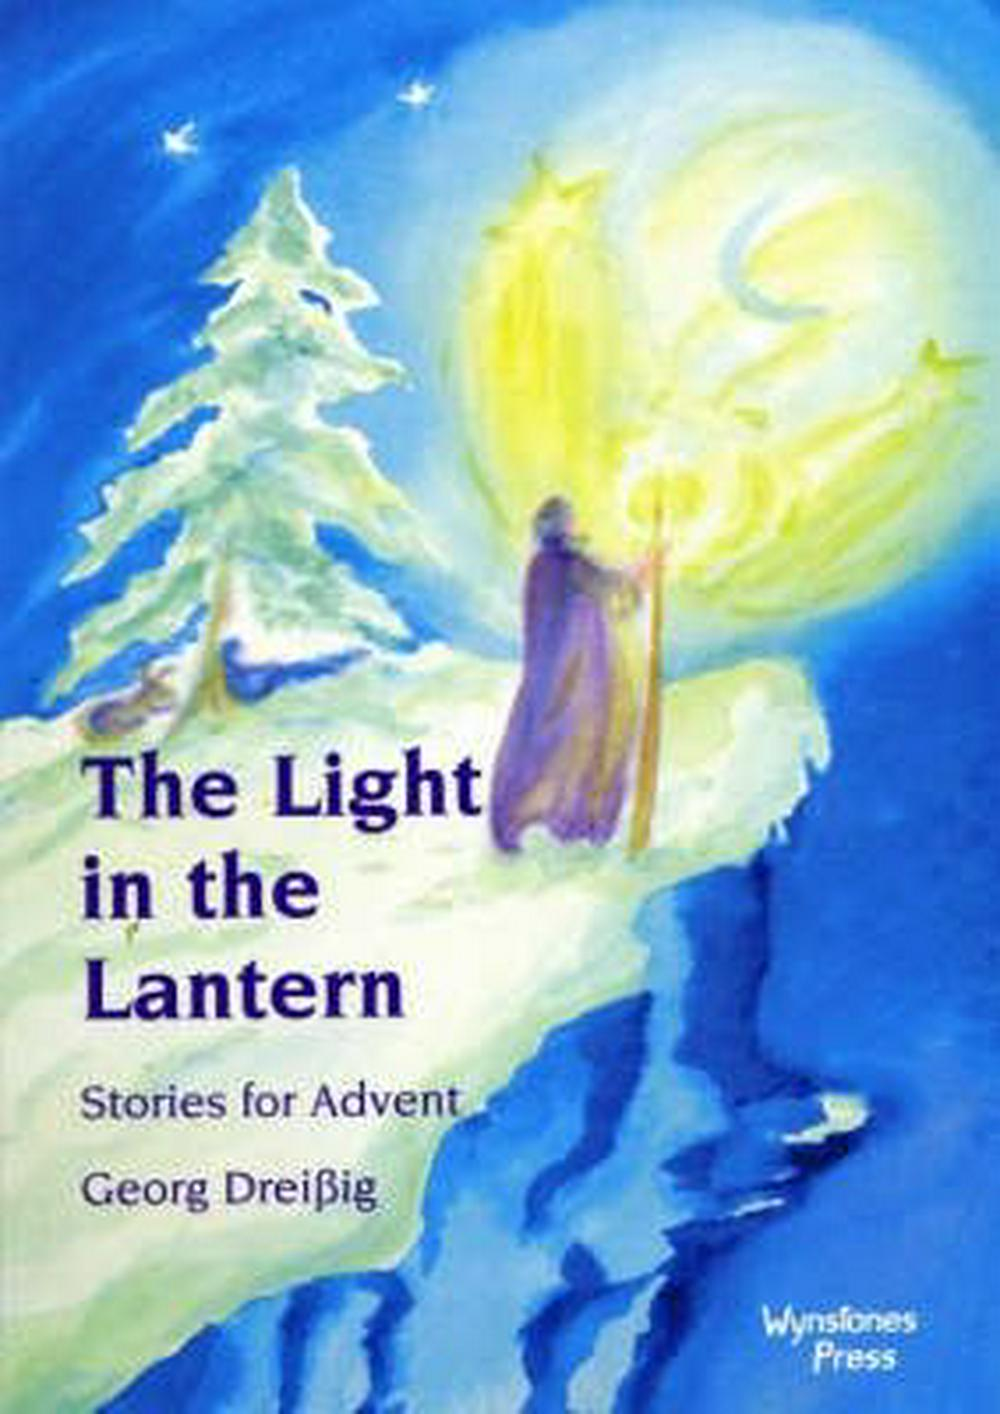 The Light in the Lantern: Stories for Advent